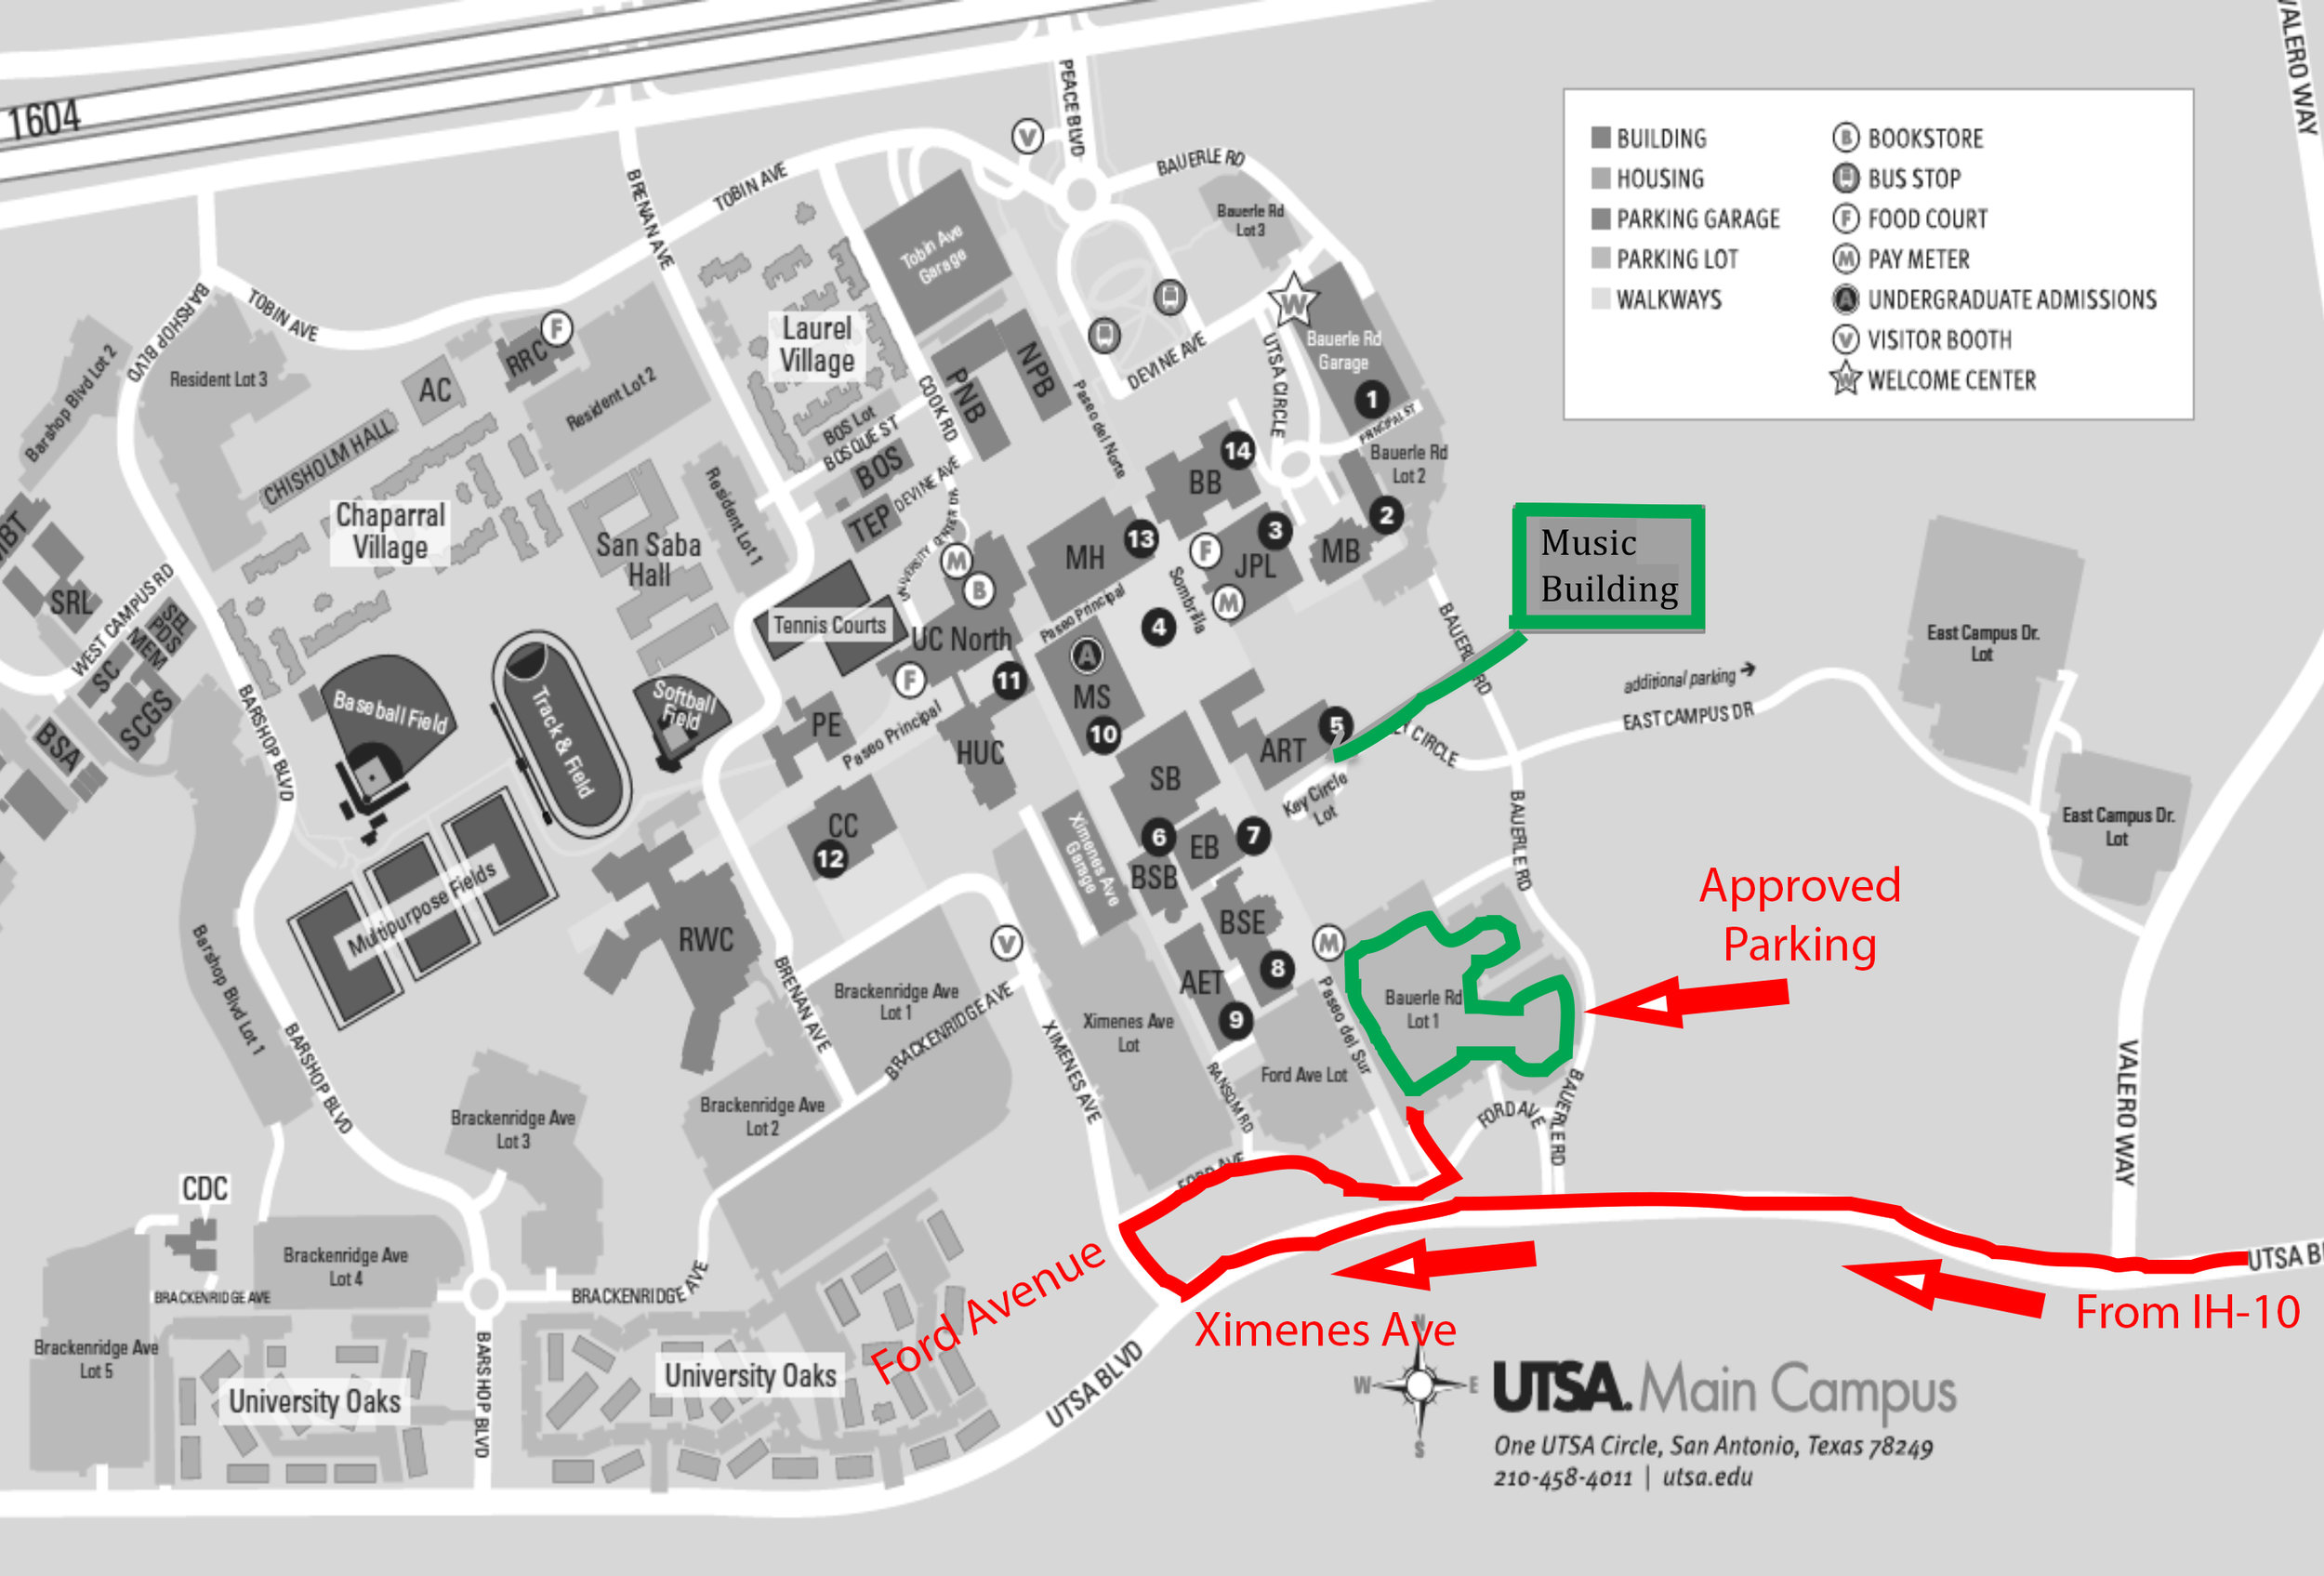 Because the Tosca concert is on a school night, we have been approved for free parking in LOT #1 (south campus, to the east/right of the walkway up the hill).    Guests may park in any unmarked, Faculty A or Faculty B slot, but will be ticketed if they park in the metered parking (unless they pay) or 24-hour Reserved slot (first 3 rows or so).